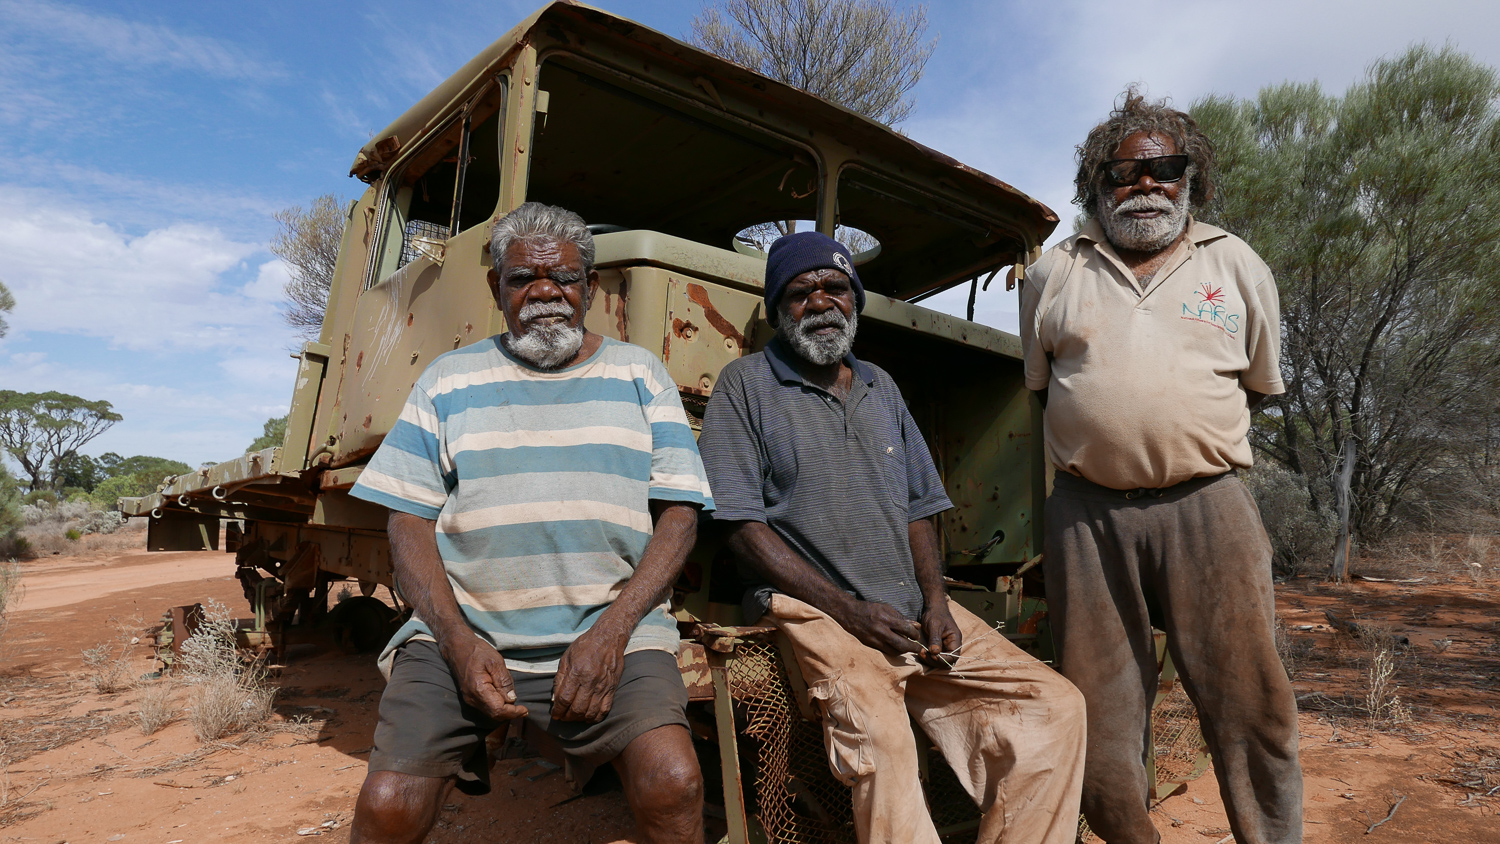 """Fred Grant, Rusty Hogan and Ned Grant, with the army truck they travelled in to return to Spinifex Country and establish Tjuntjuntjara community. Fred and Ned were part of the original group of people who were 'found' in the bush and relocated to Cundeelee mission. In the late 1980's they returned to Spinifex Country, because they """"wanted to be home"""", and to be able to continue to speak their original language and practice their culture."""